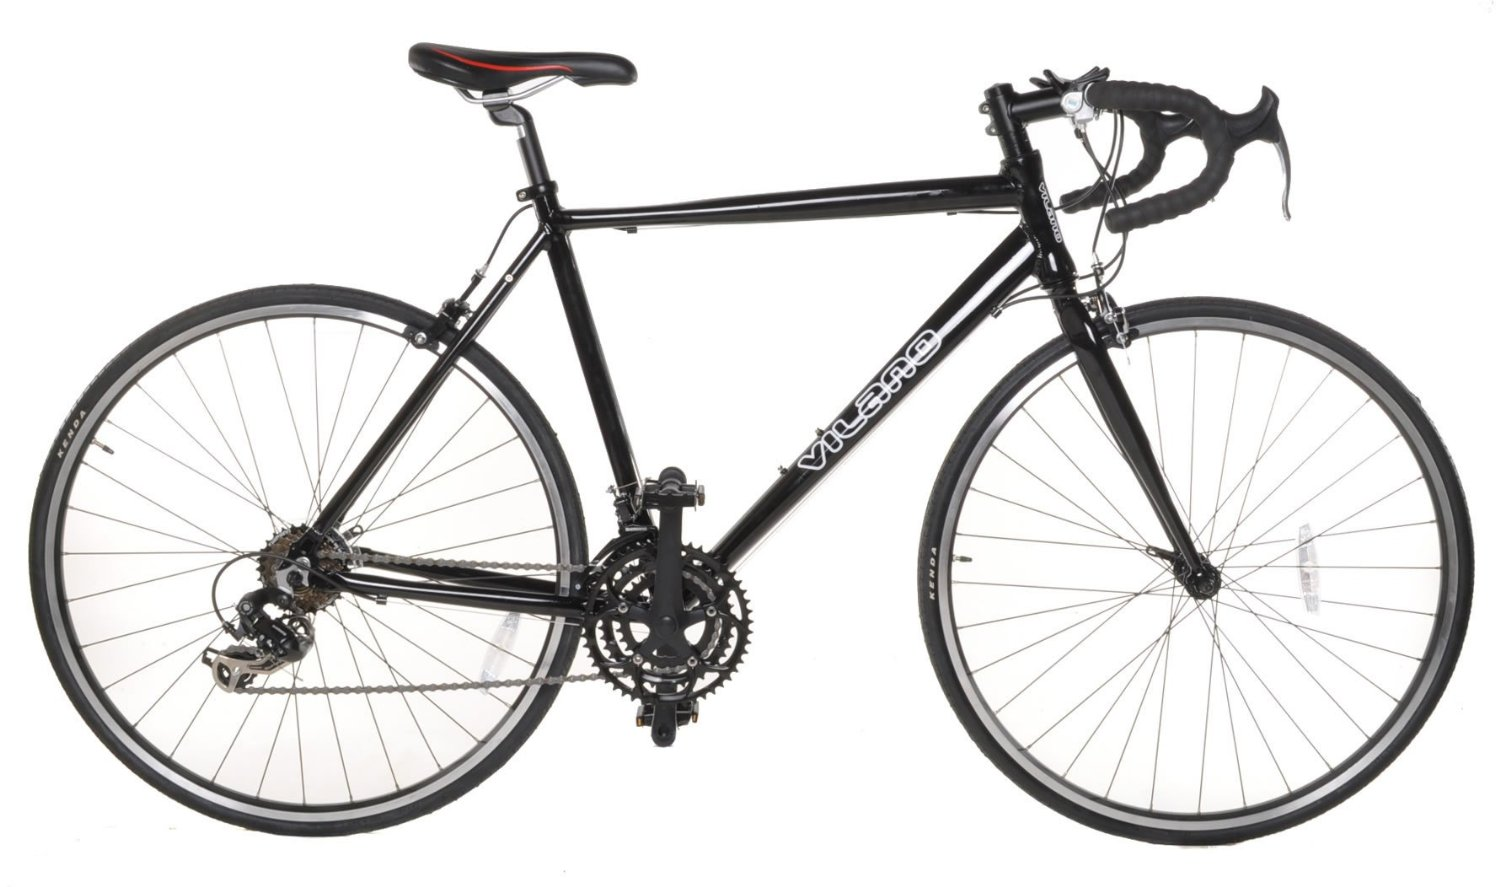 Best Road Bike Under 1500 Reviews in 2017 ~ Top Buying Guide